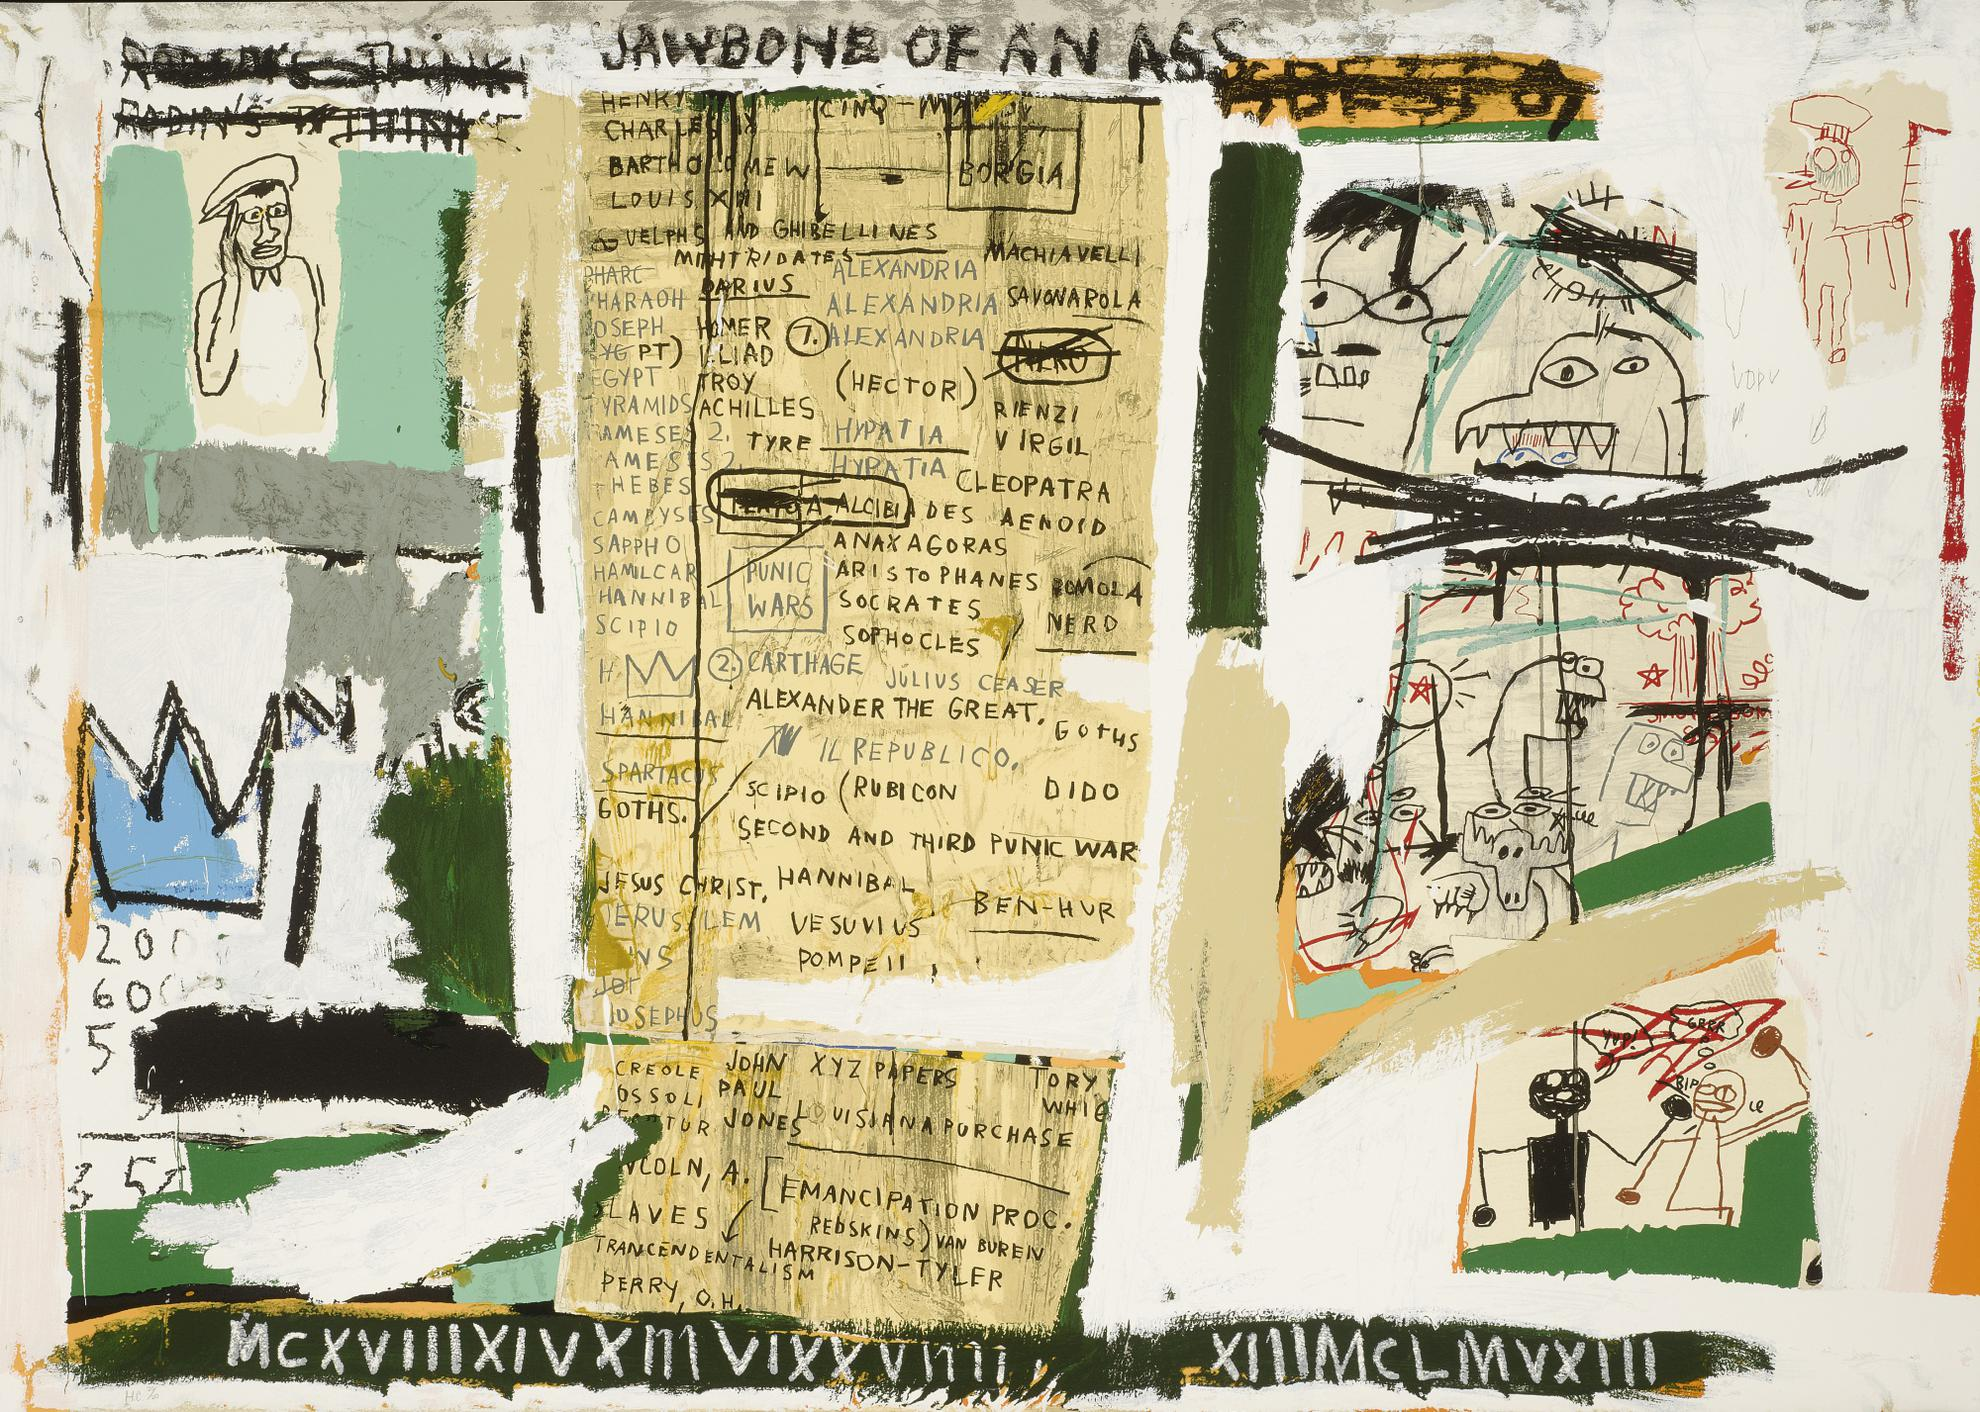 Jean-Michel Basquiat-After Jean-Michel Basquiat - Jawbone Of An Ass-2004